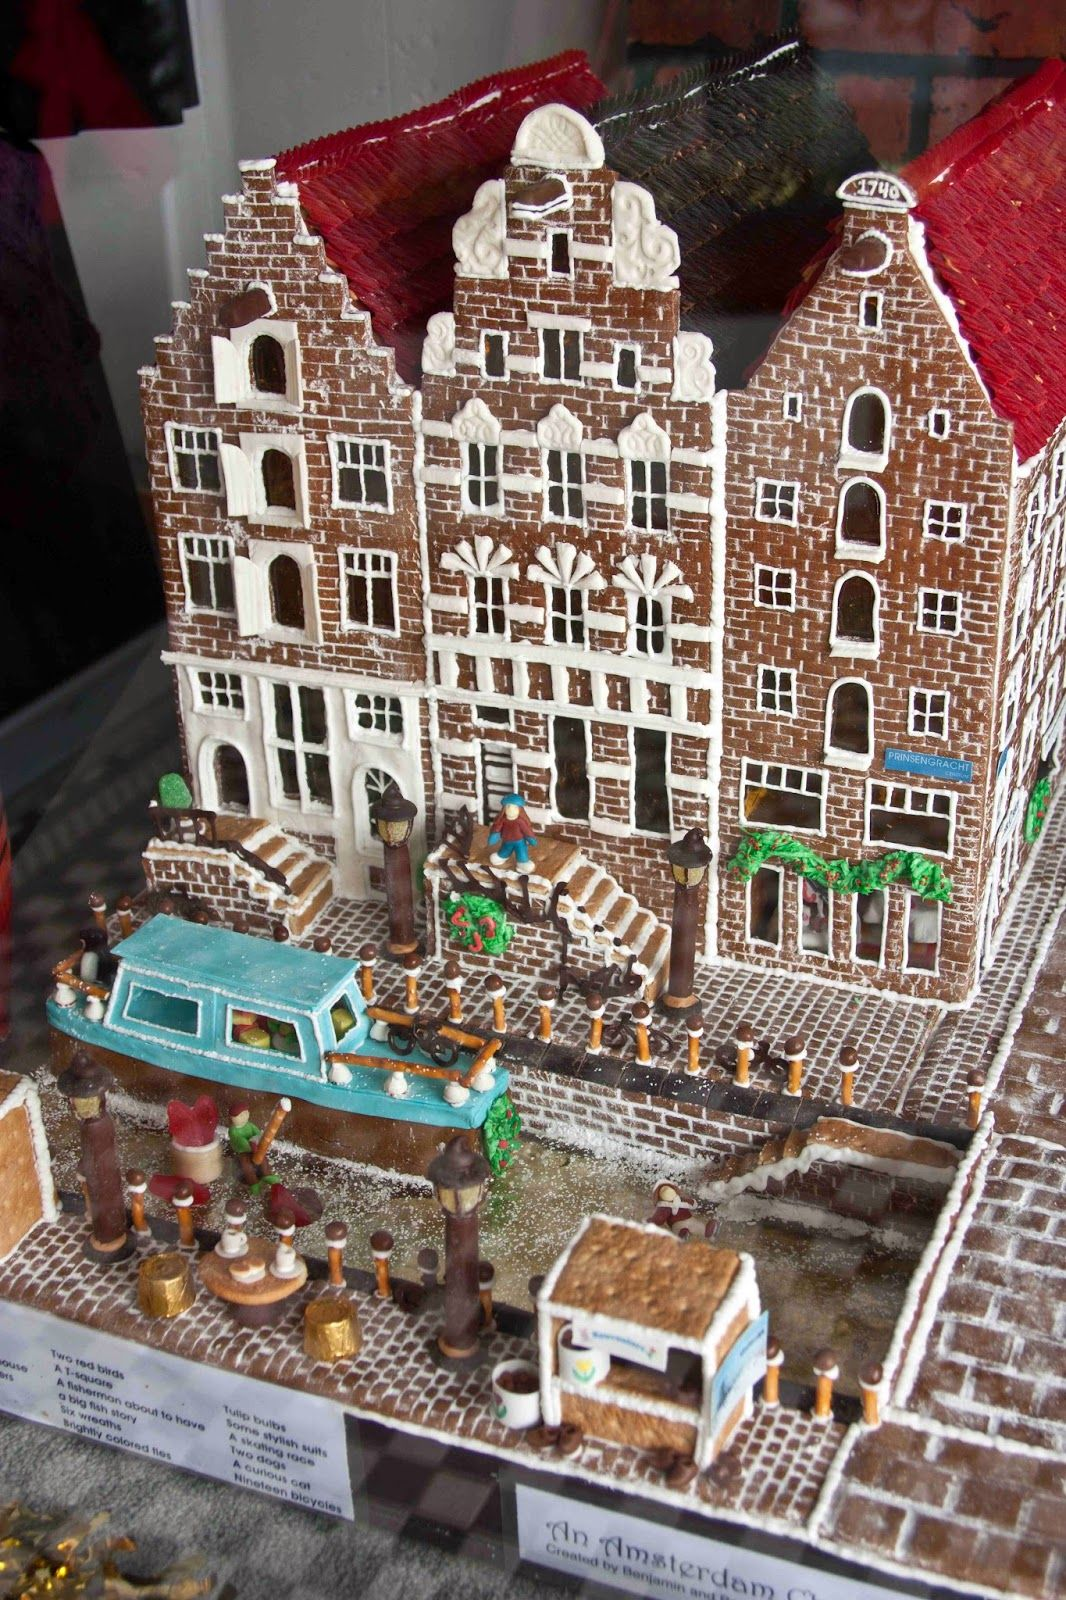 gingerbread house, amsterdam, parade of gingerbread homes